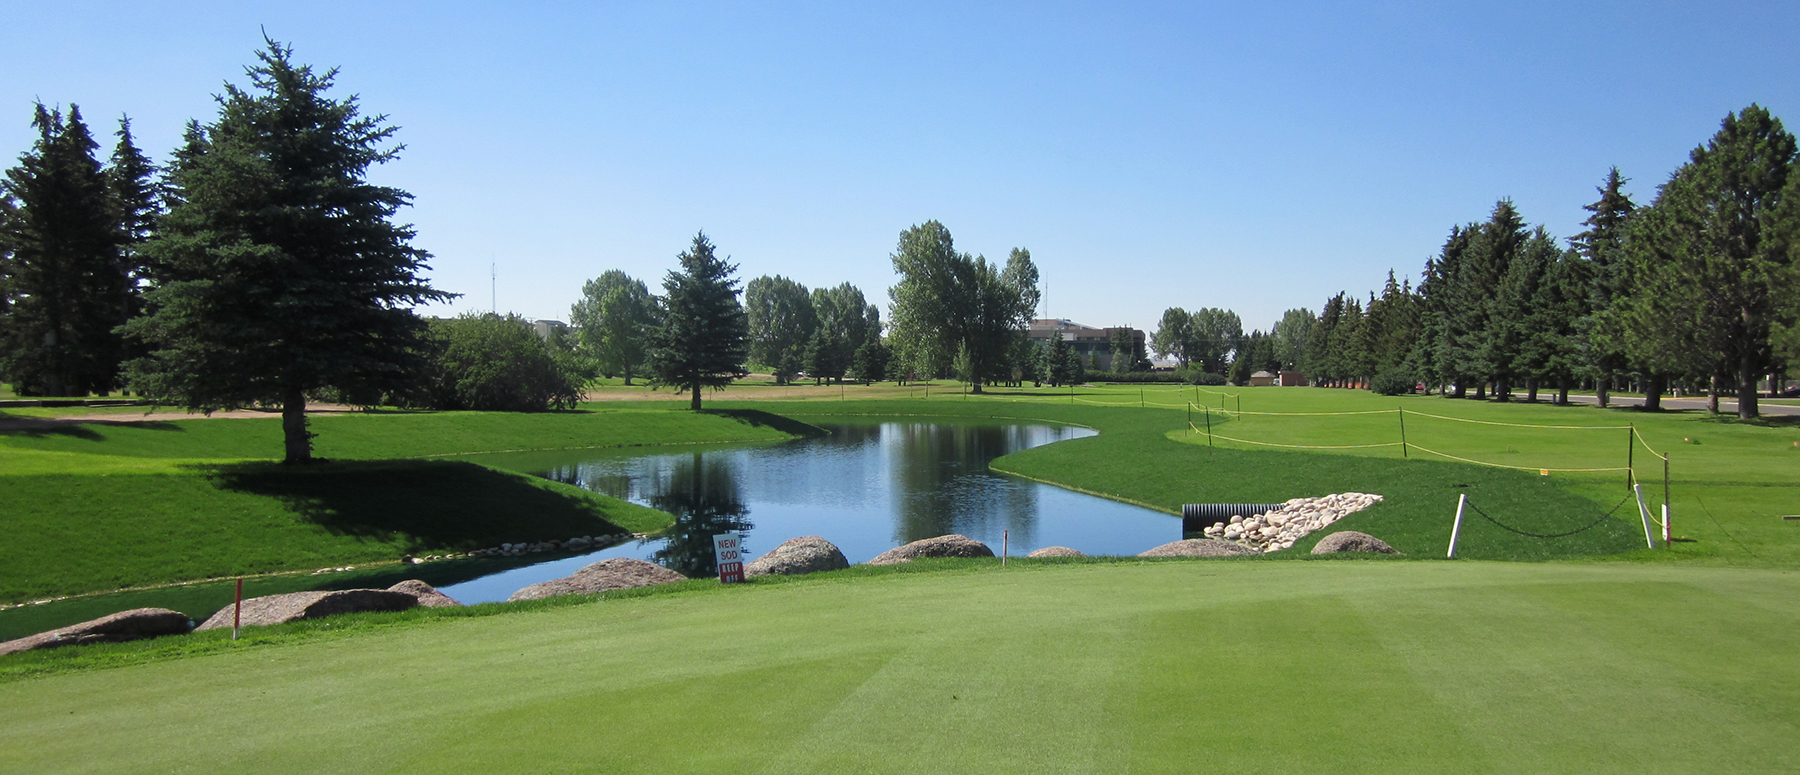 Golf-Course_Stormwater-Control-System_Hero